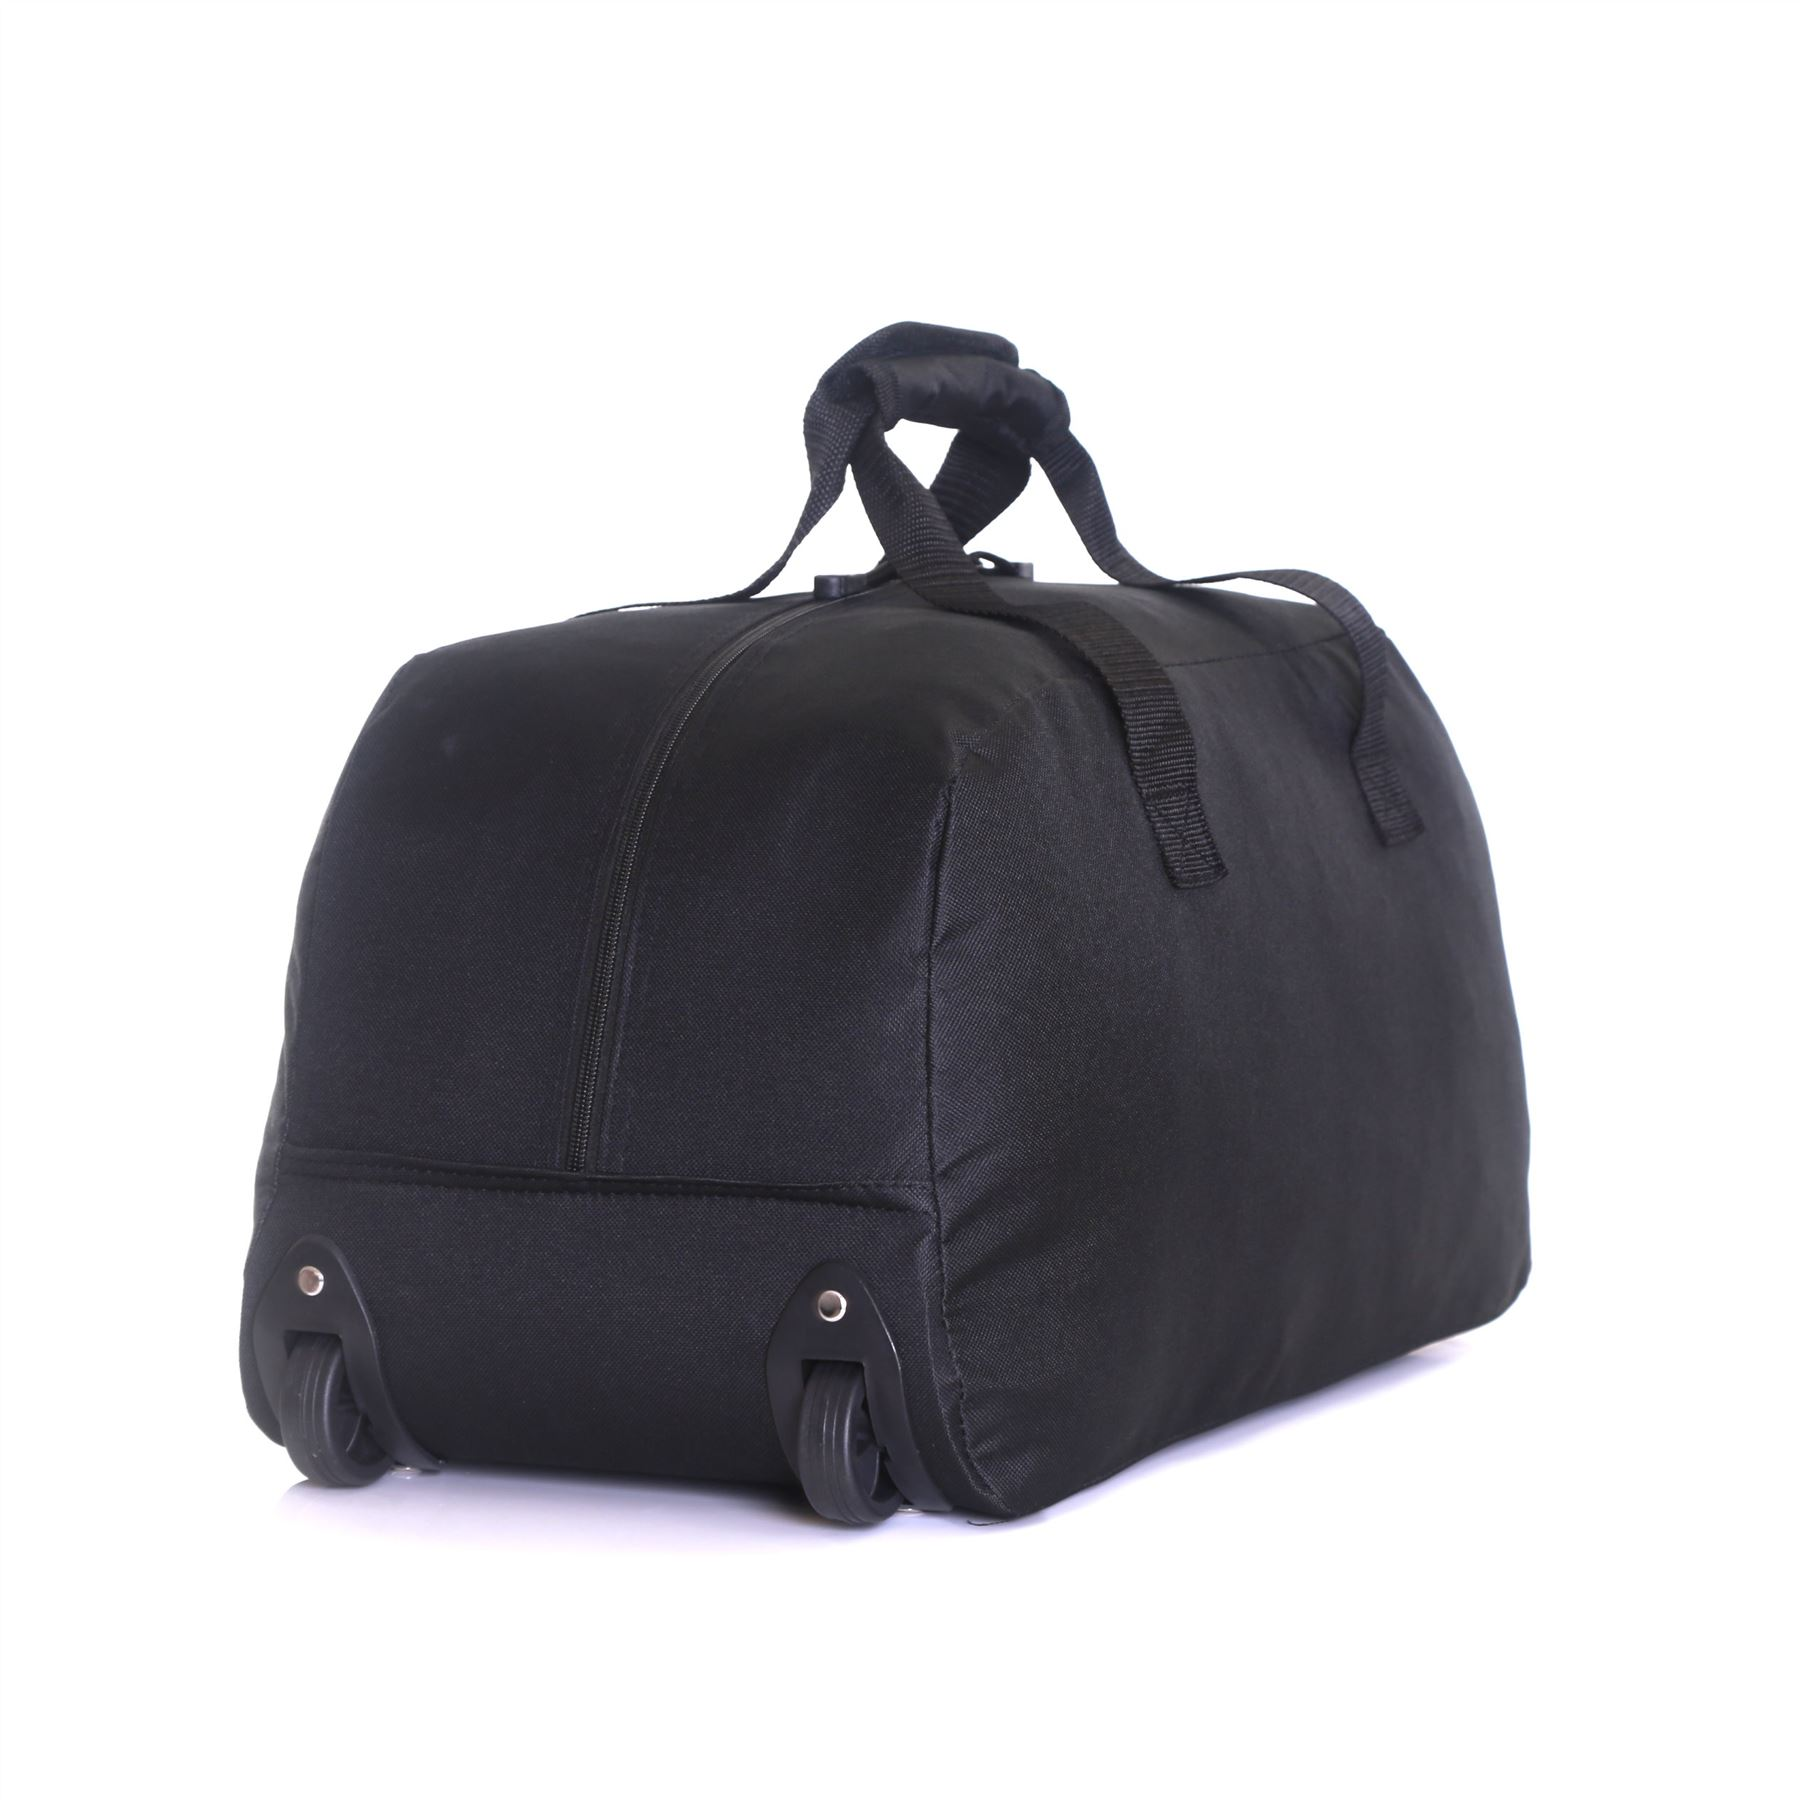 cabin approved wheeled travel trolley hand luggage suitcase duffle holdall bag ebay. Black Bedroom Furniture Sets. Home Design Ideas